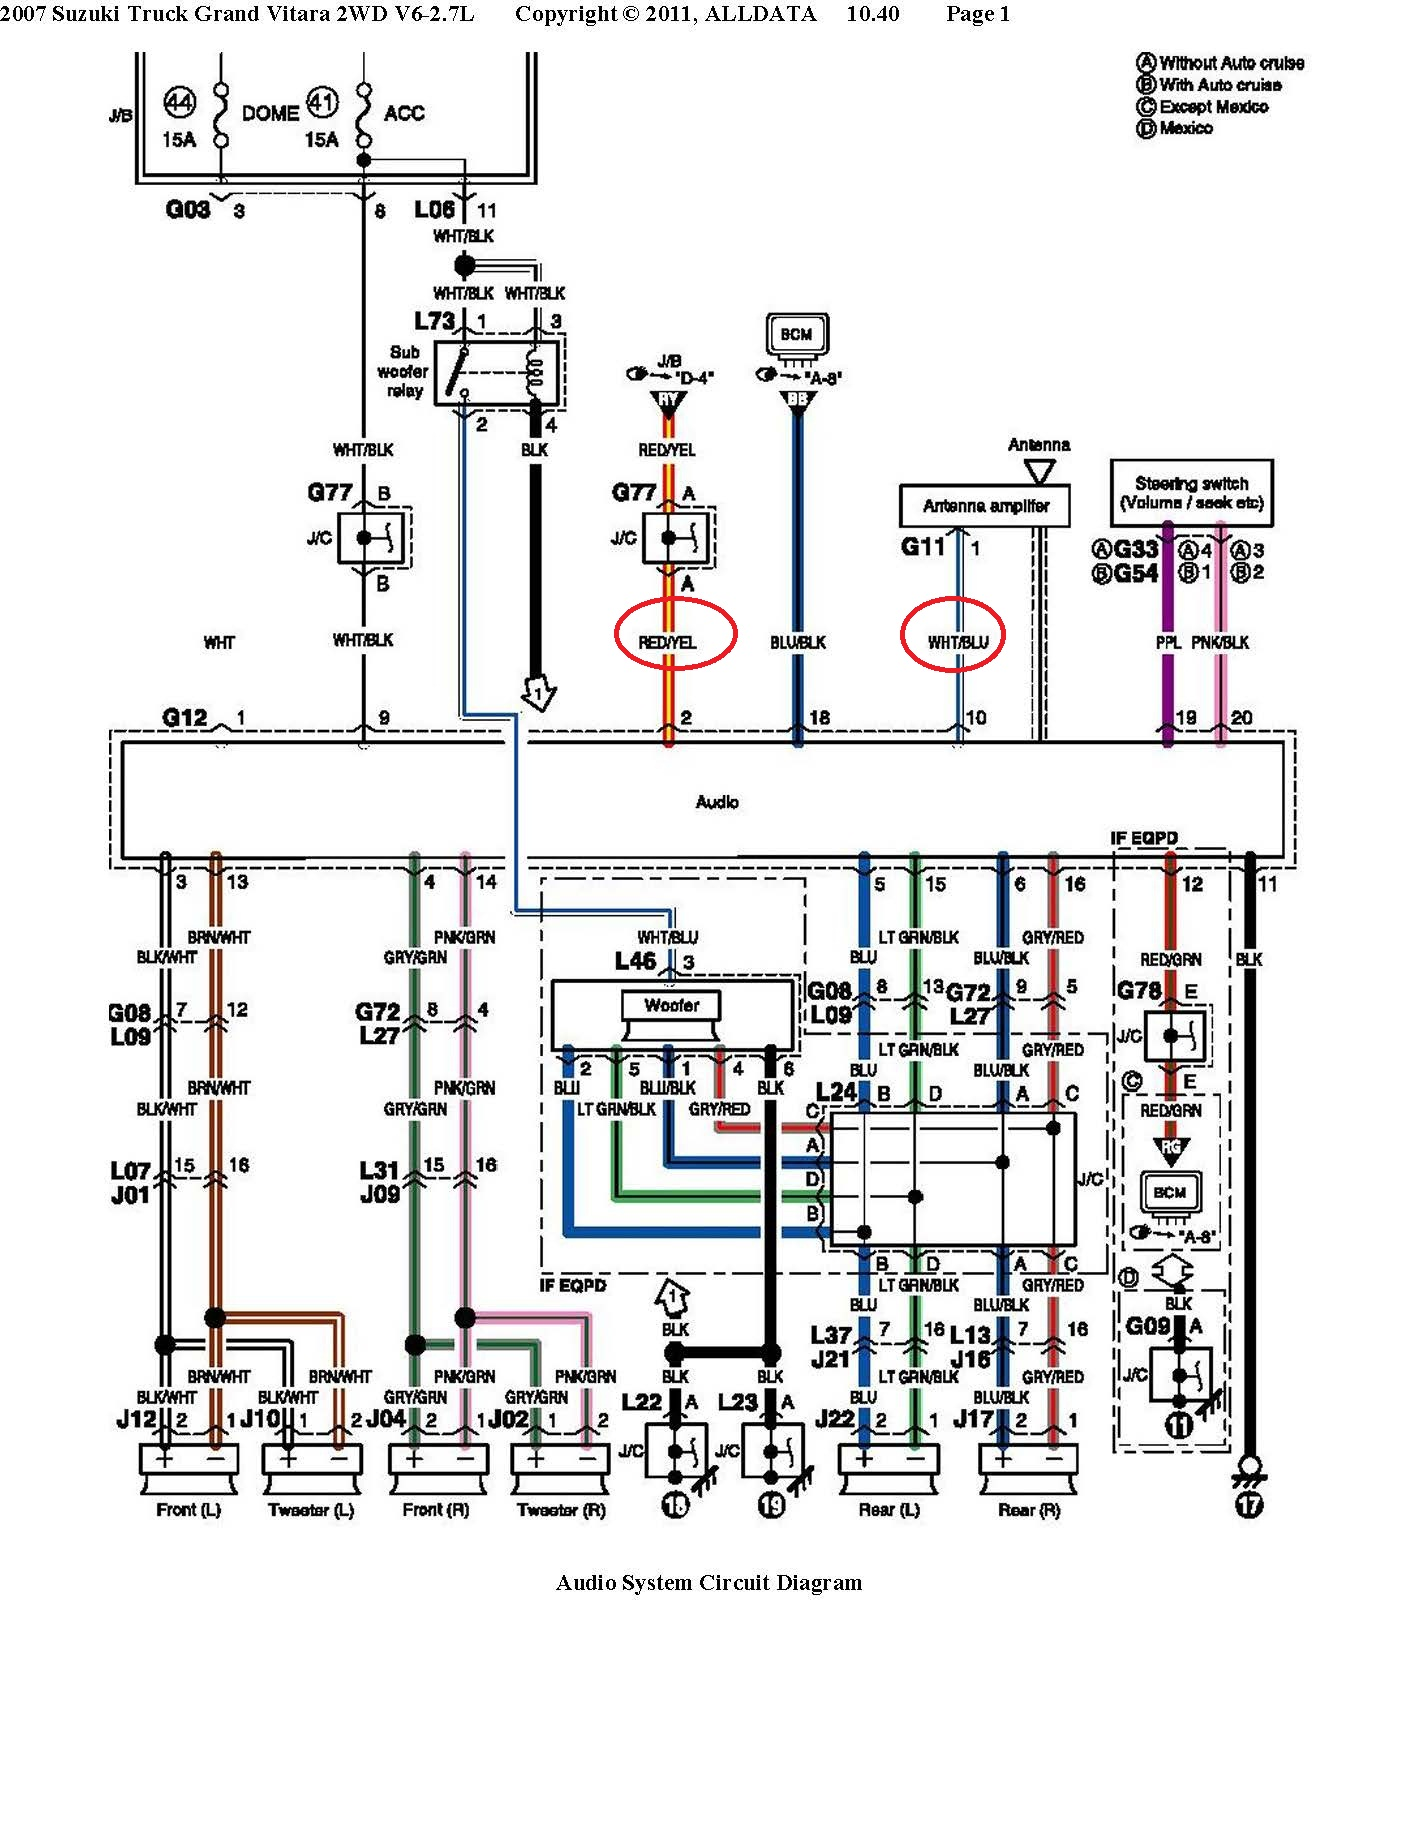 Suzuki Car Radio Stereo Audio Wiring Diagram Autoradio Connector M Diagrams Wire Installation Schematic Schema Esquema De Conexiones Stecker Konektor Connecteur Cable